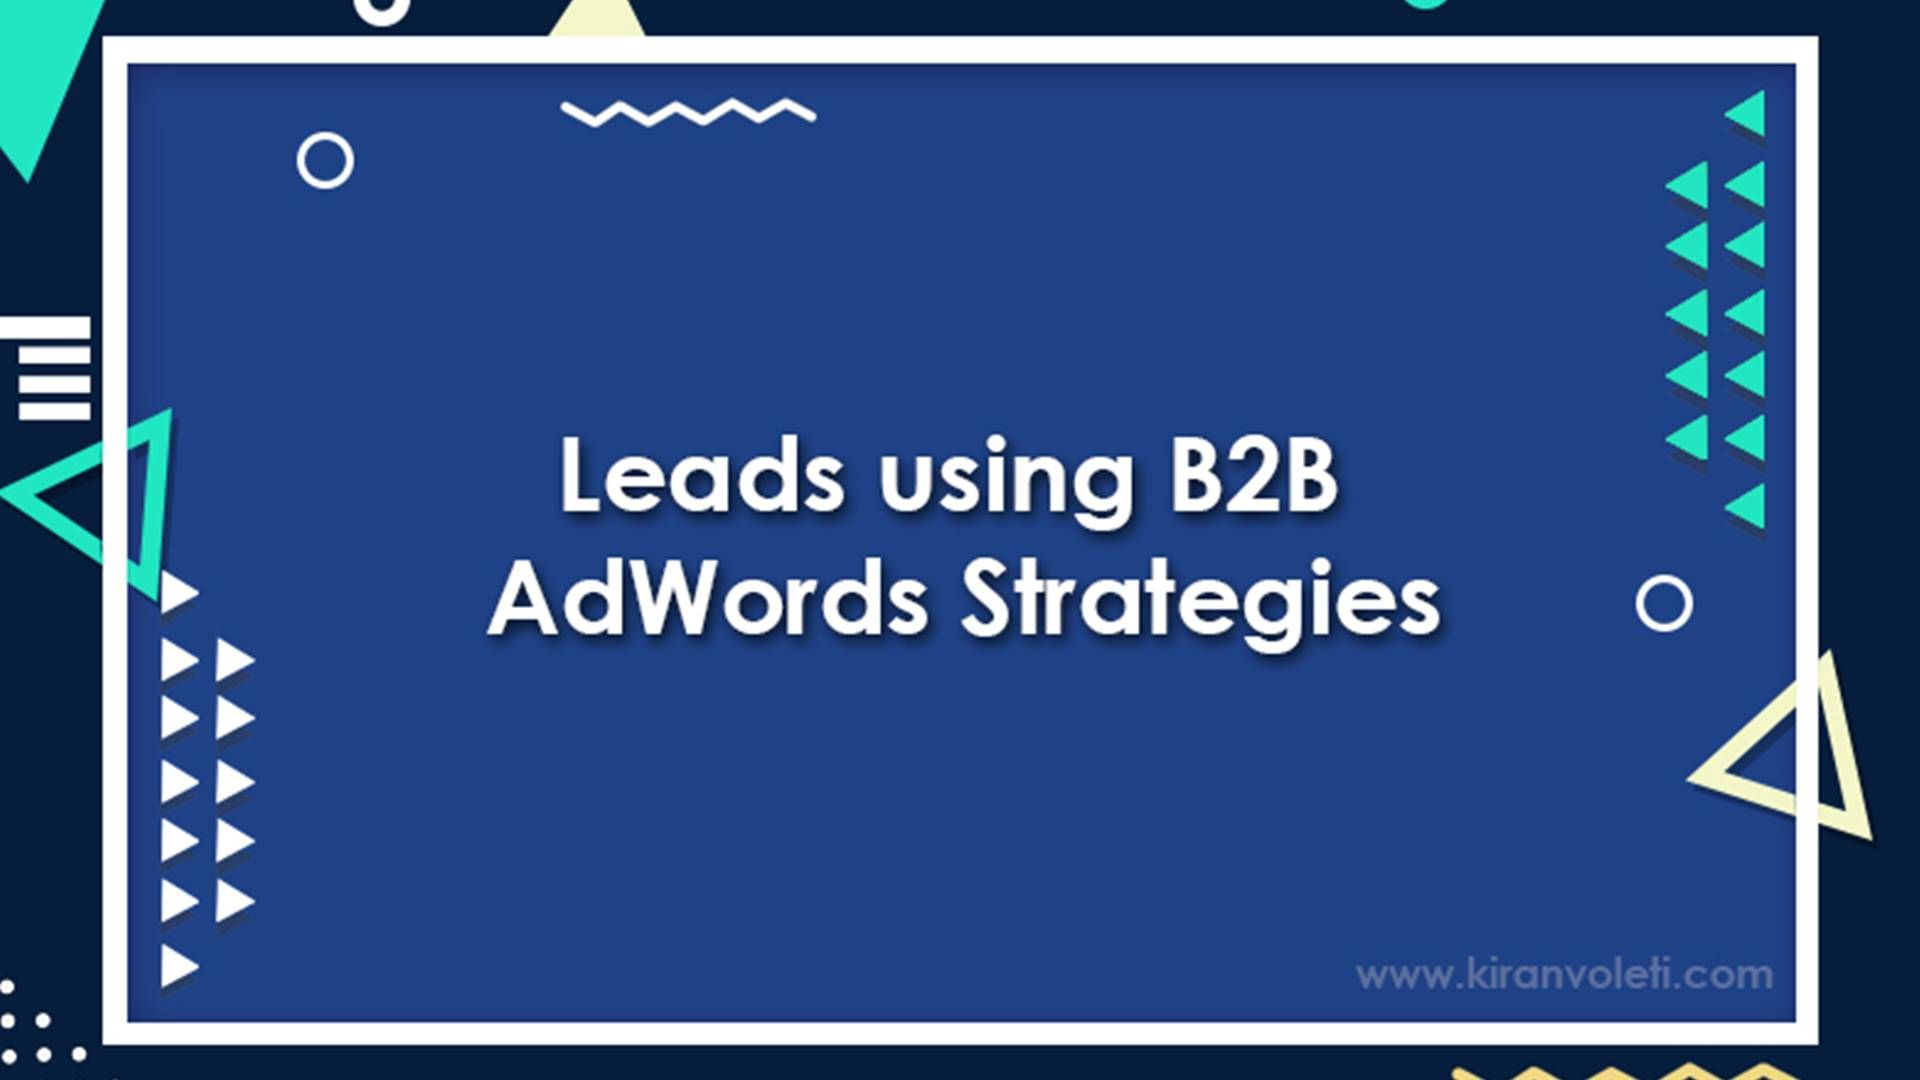 B2B AdWords Strategies